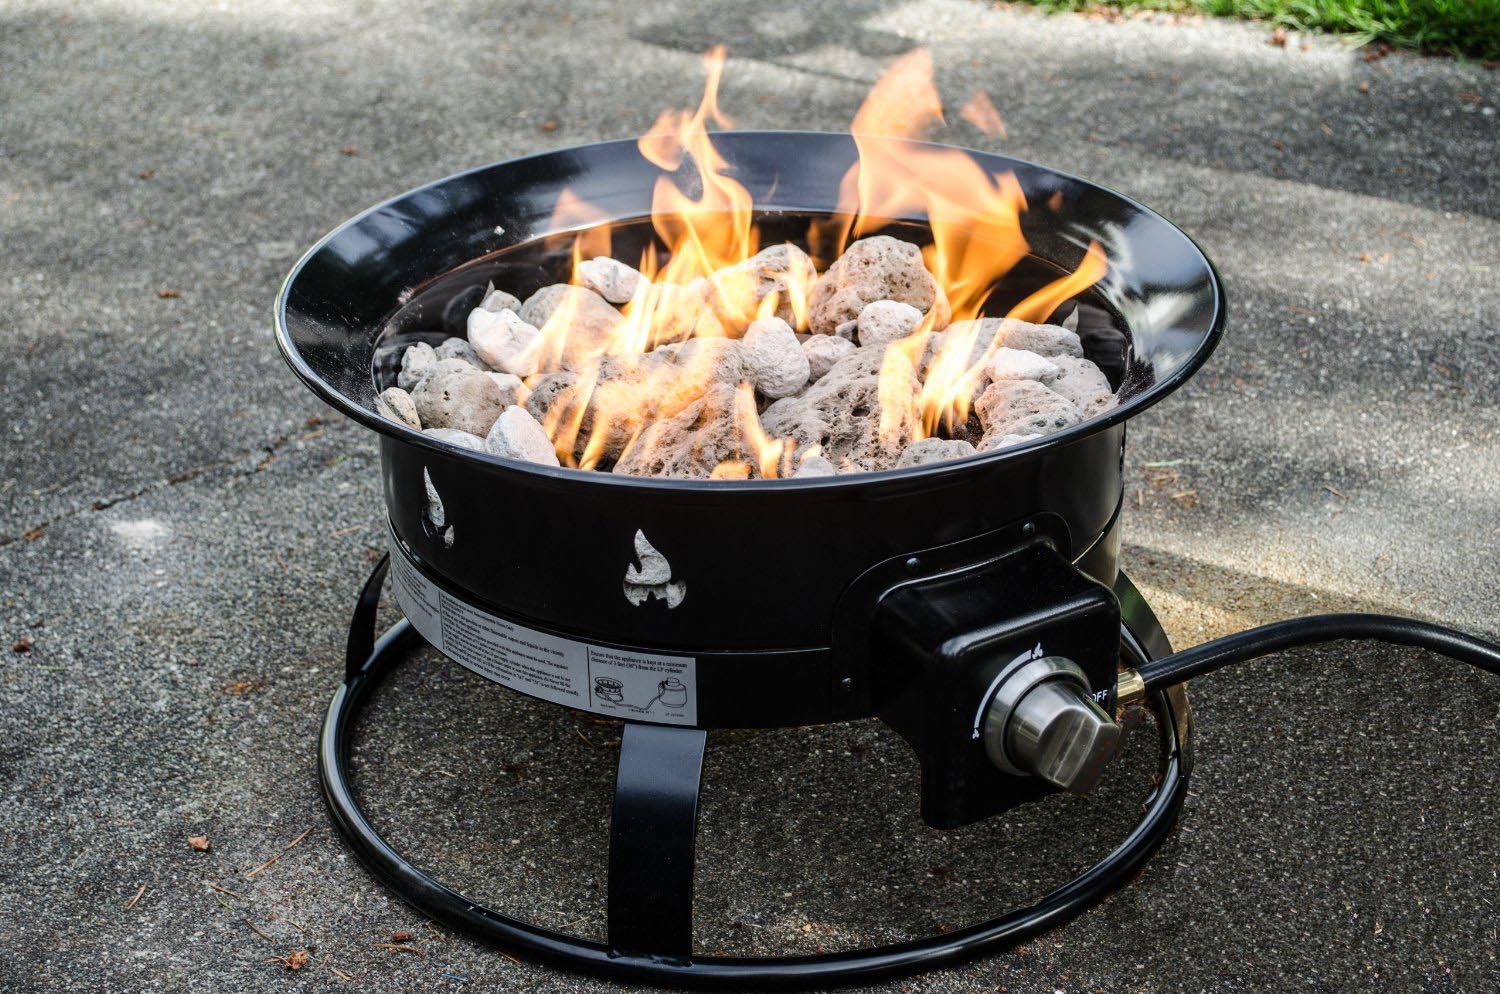 Portable outdoor lp fire pit fire pit design ideas for Buy outdoor fire pit